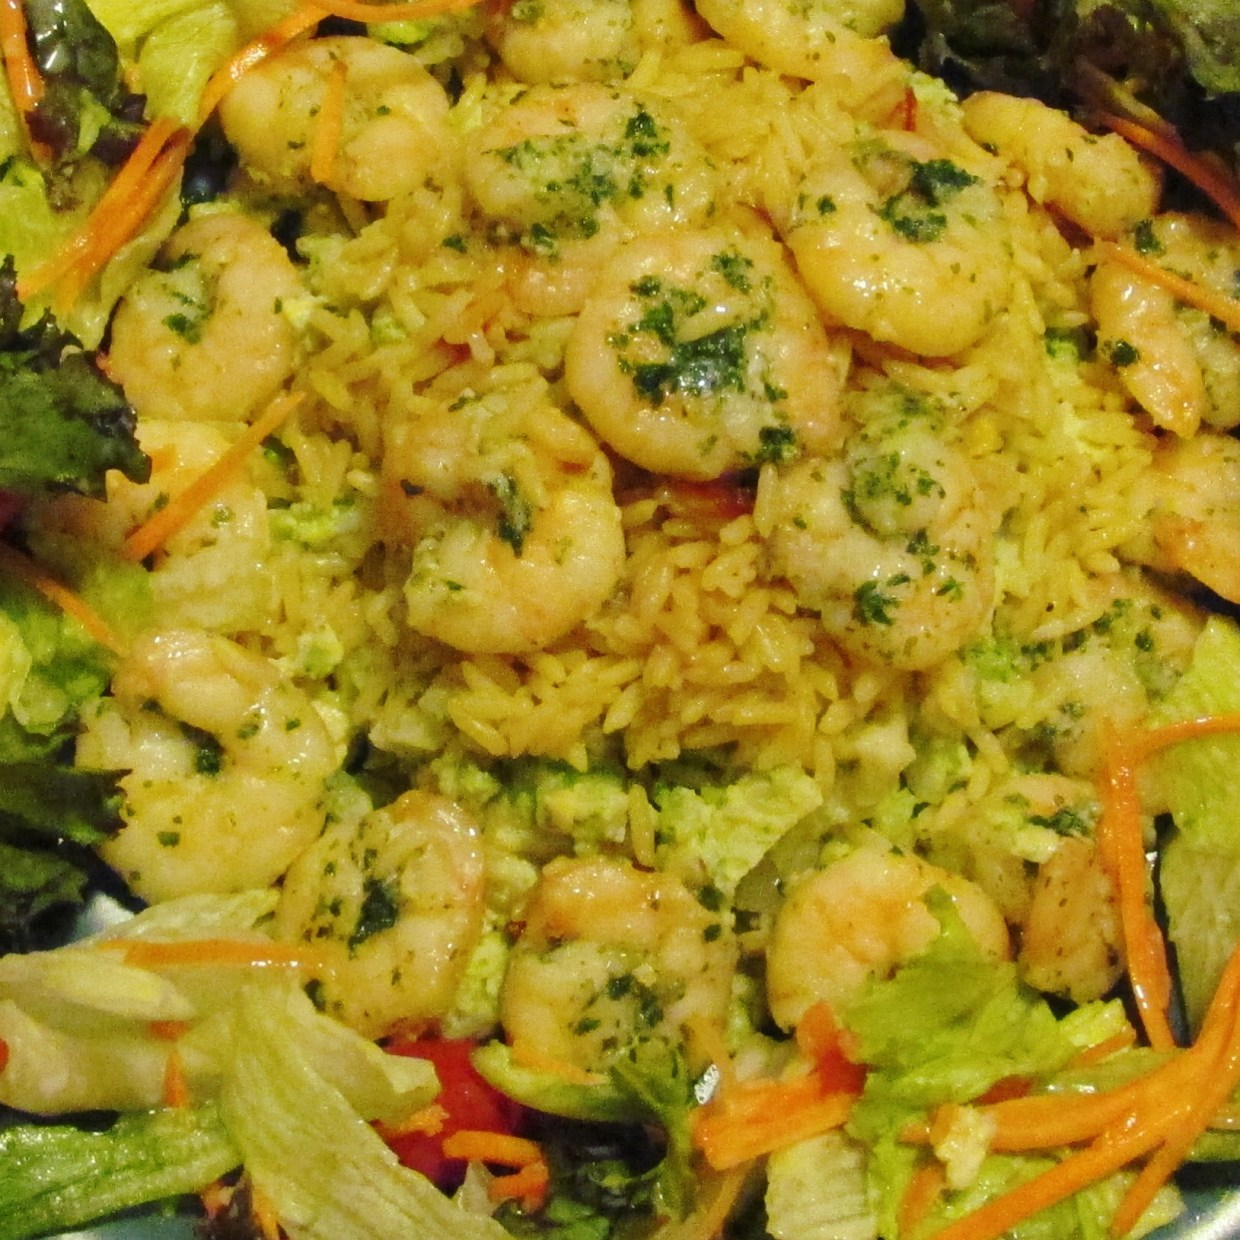 healthy broccoli under a bed of prawns & side salad